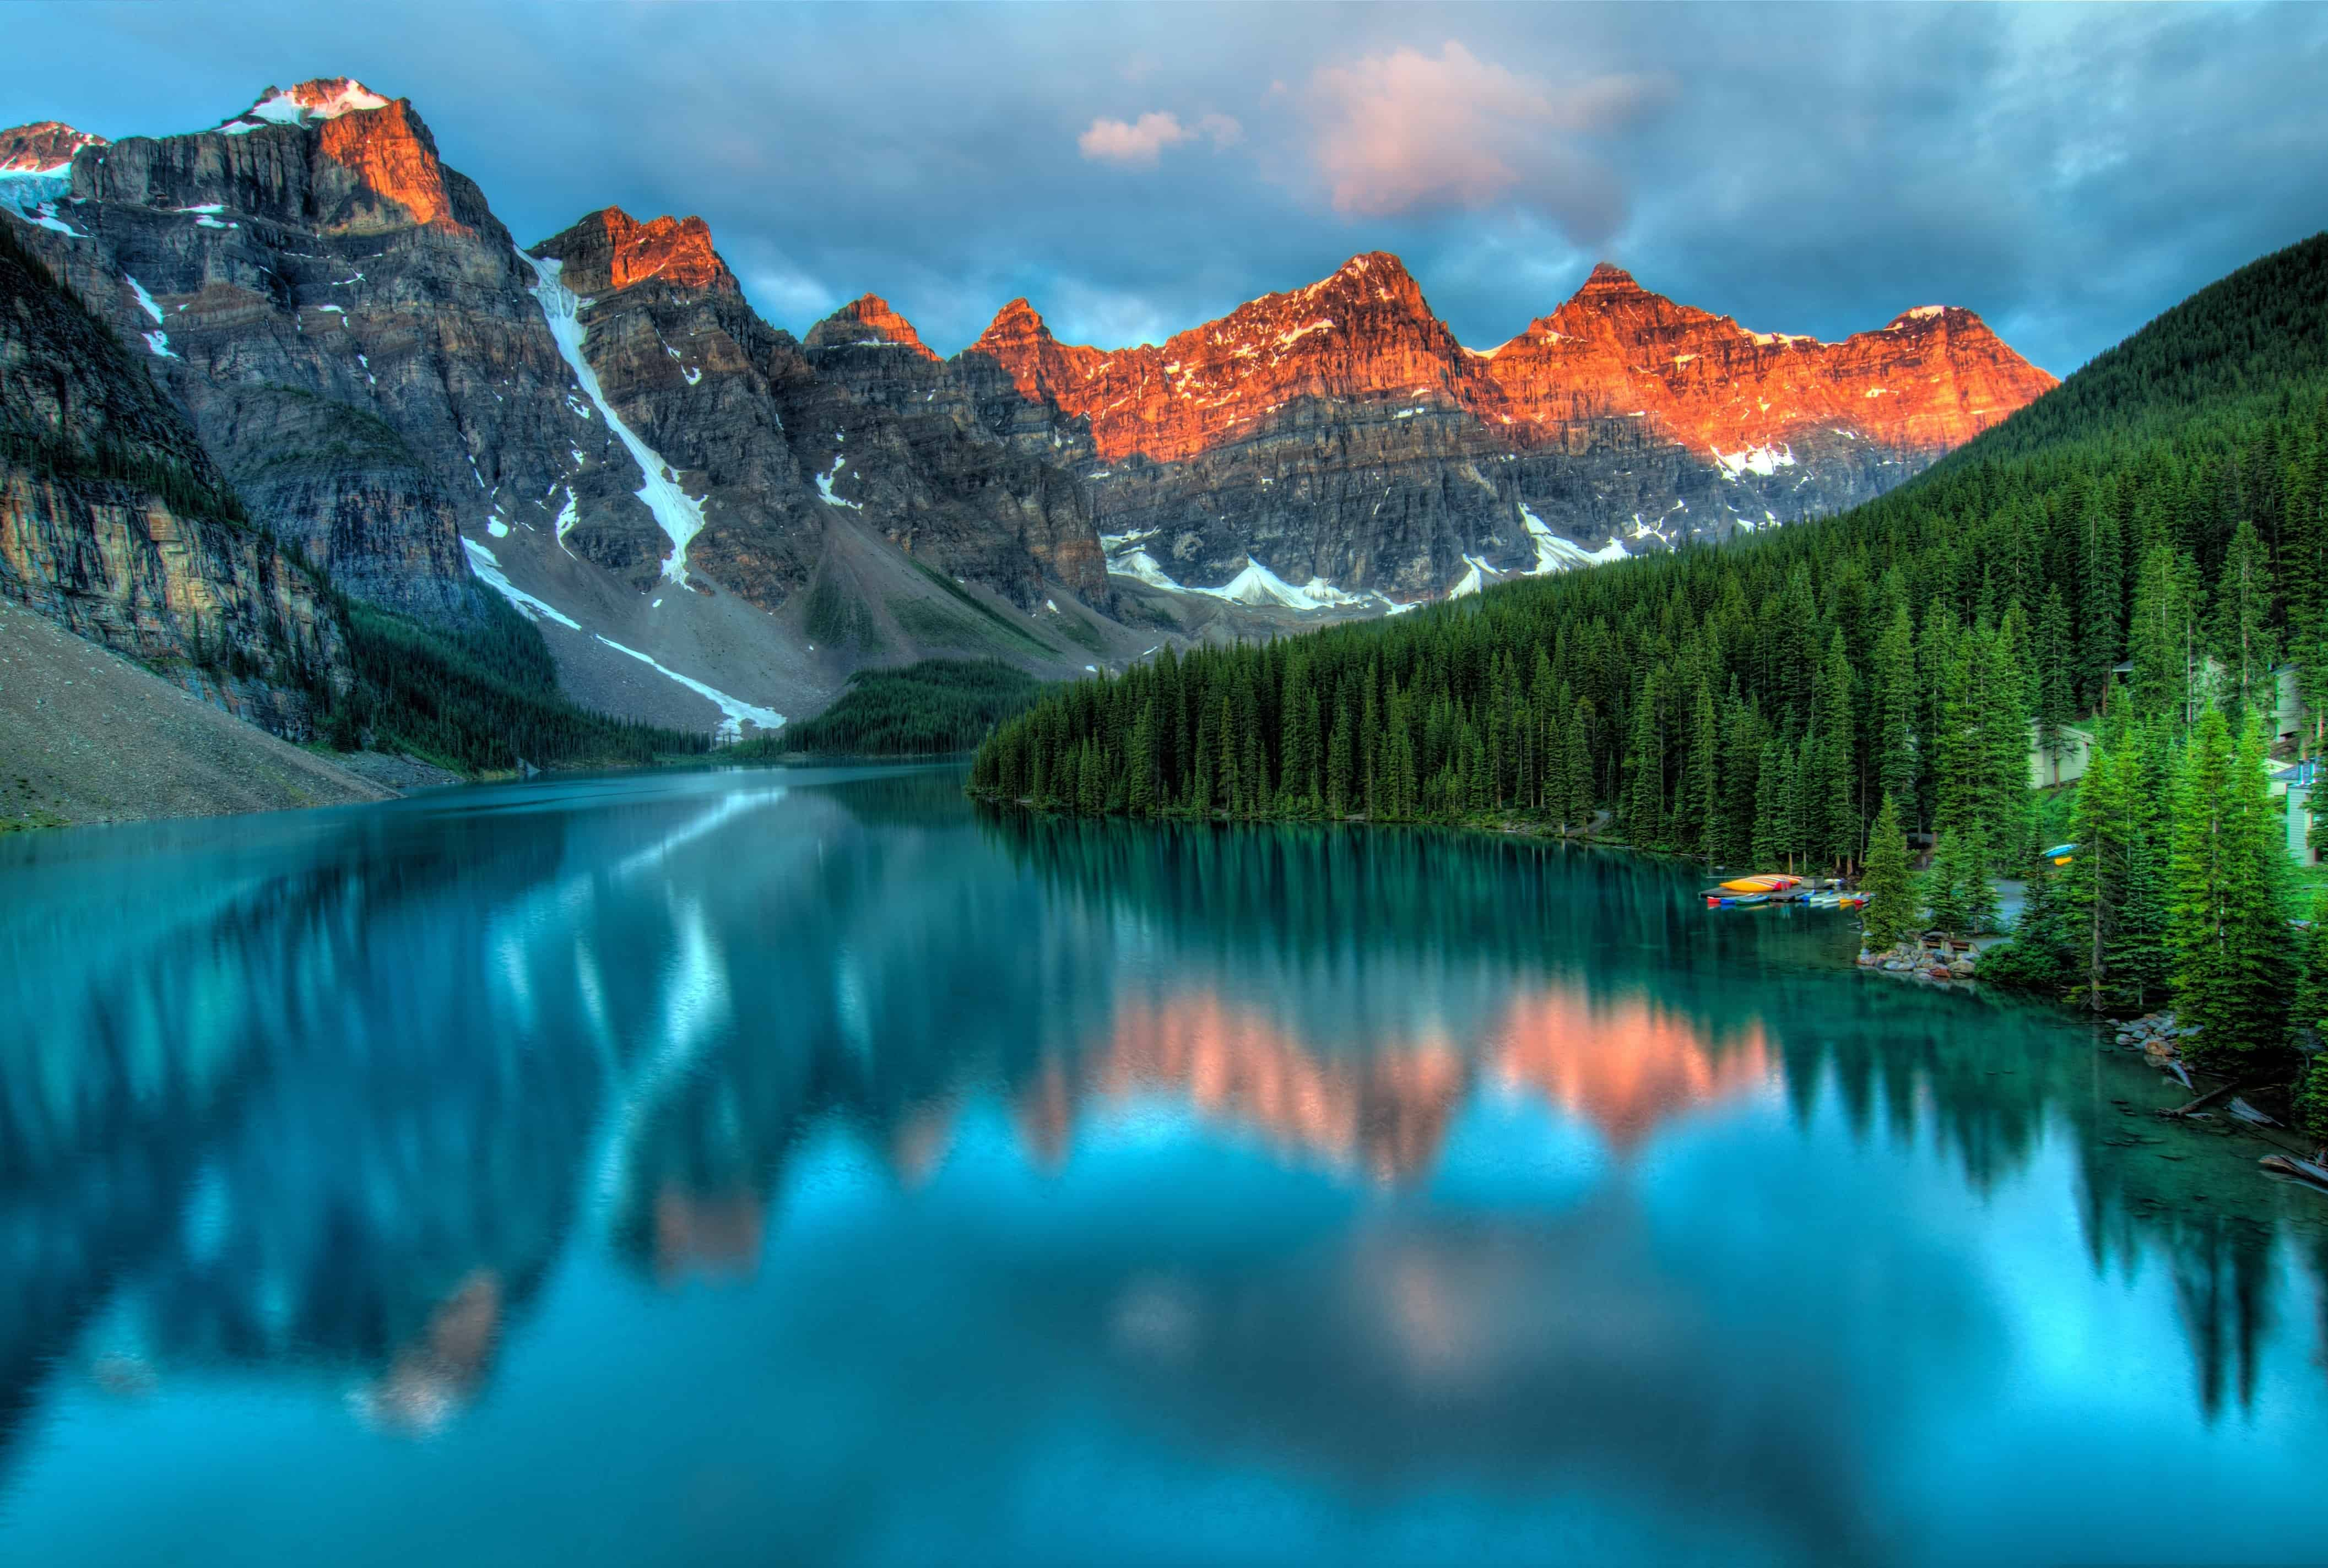 Mountains at the far end of a lake. Nature is one way to find inspiration.